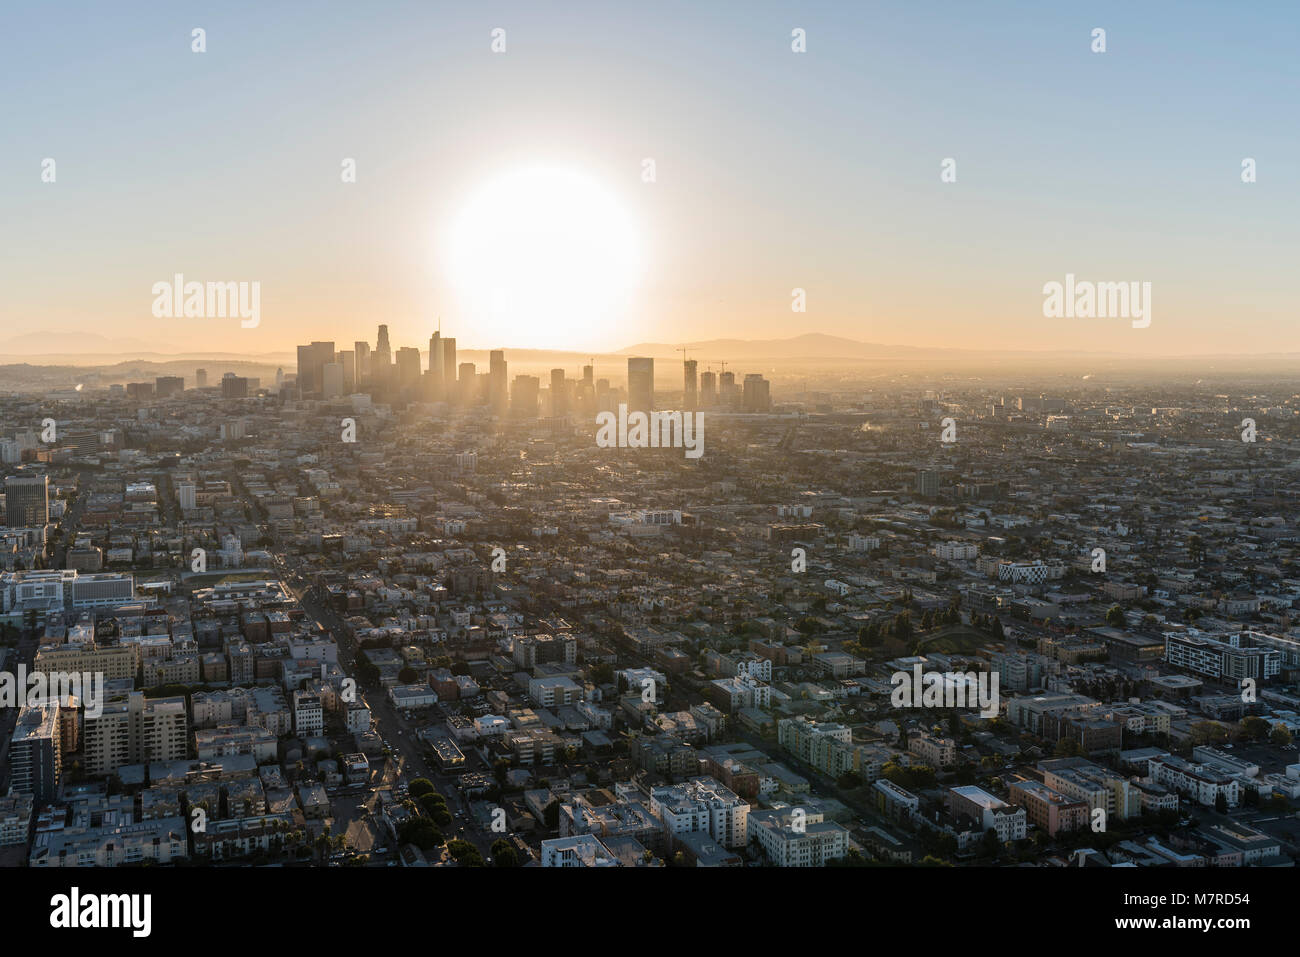 Aerial view of sunrise behind streets and buildings in the urban core of Los Angeles California. - Stock Image